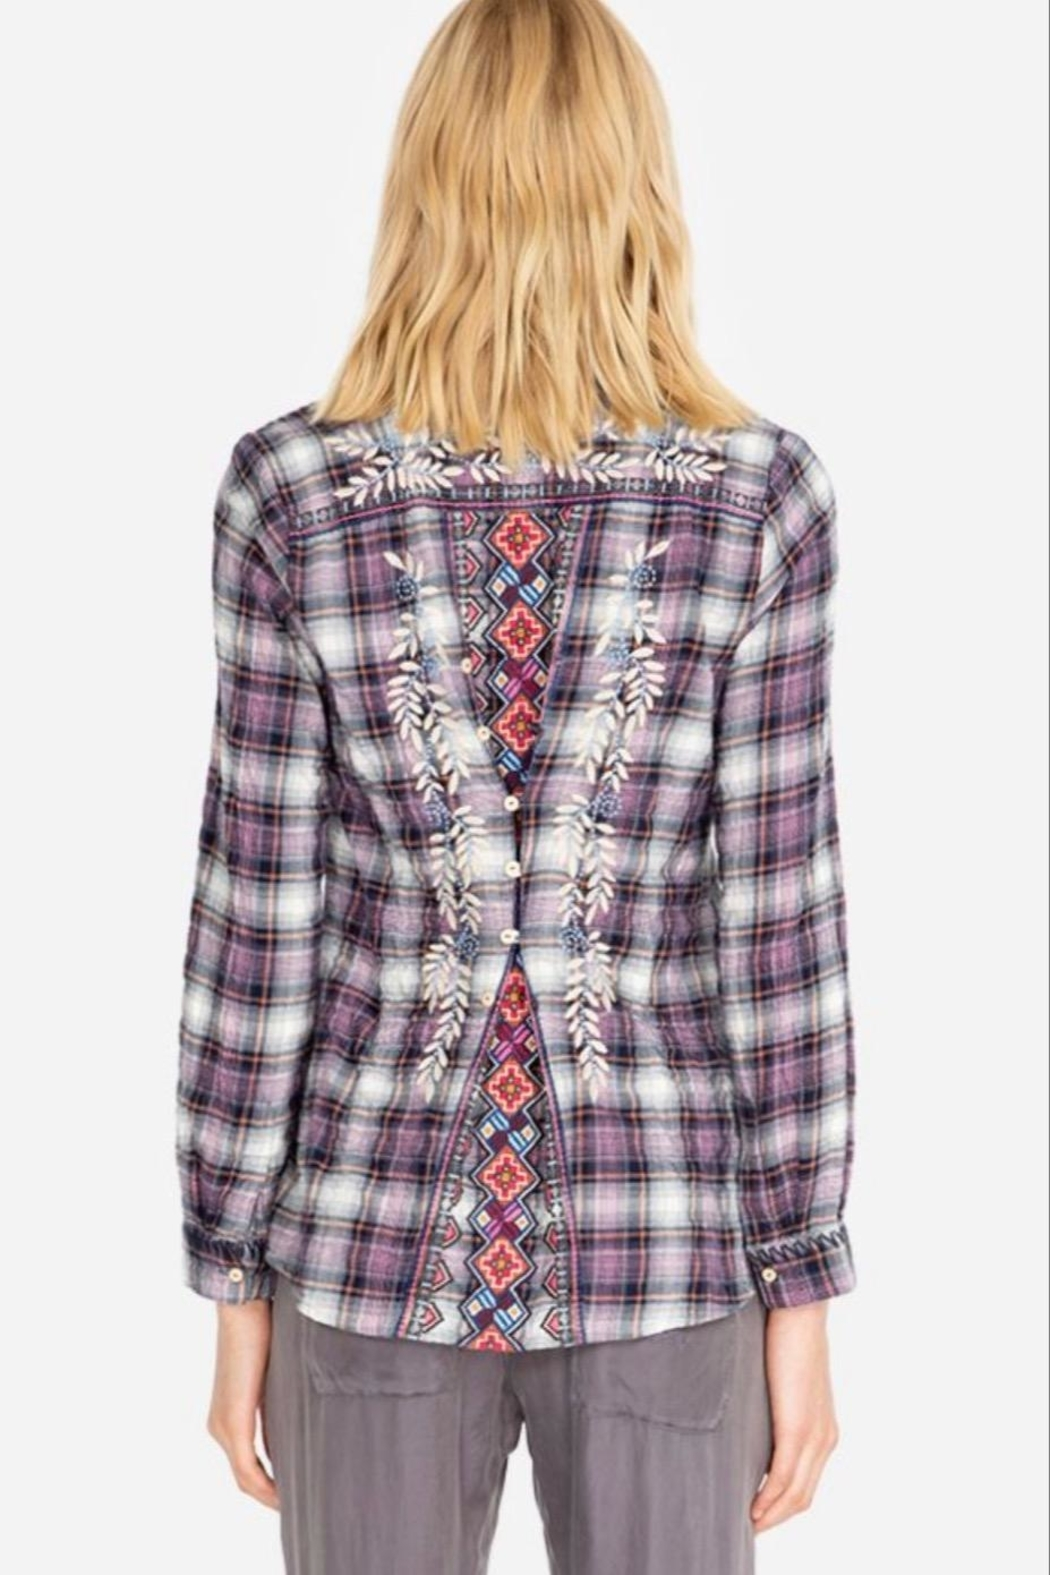 Johnny Was Ellie Button-Back Shirt - Front Full Image